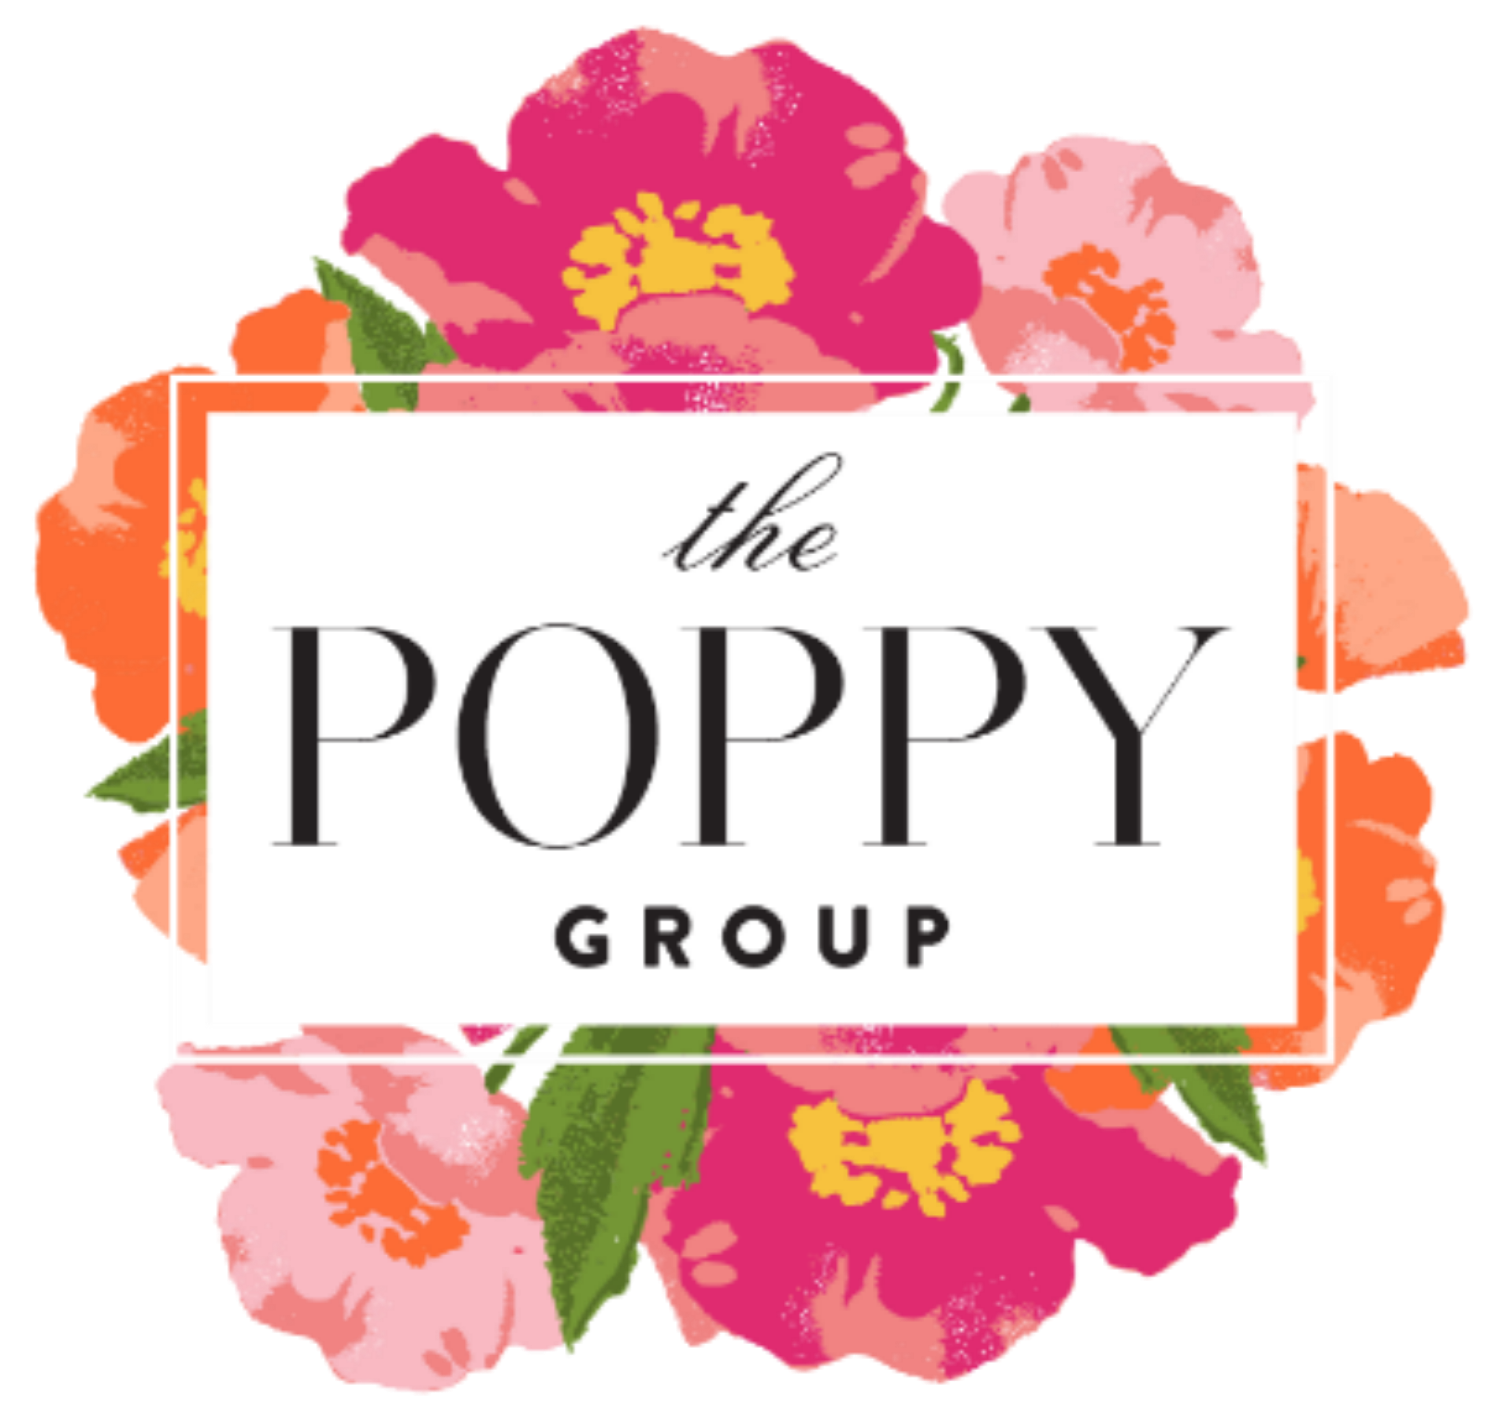 The Poppy Group